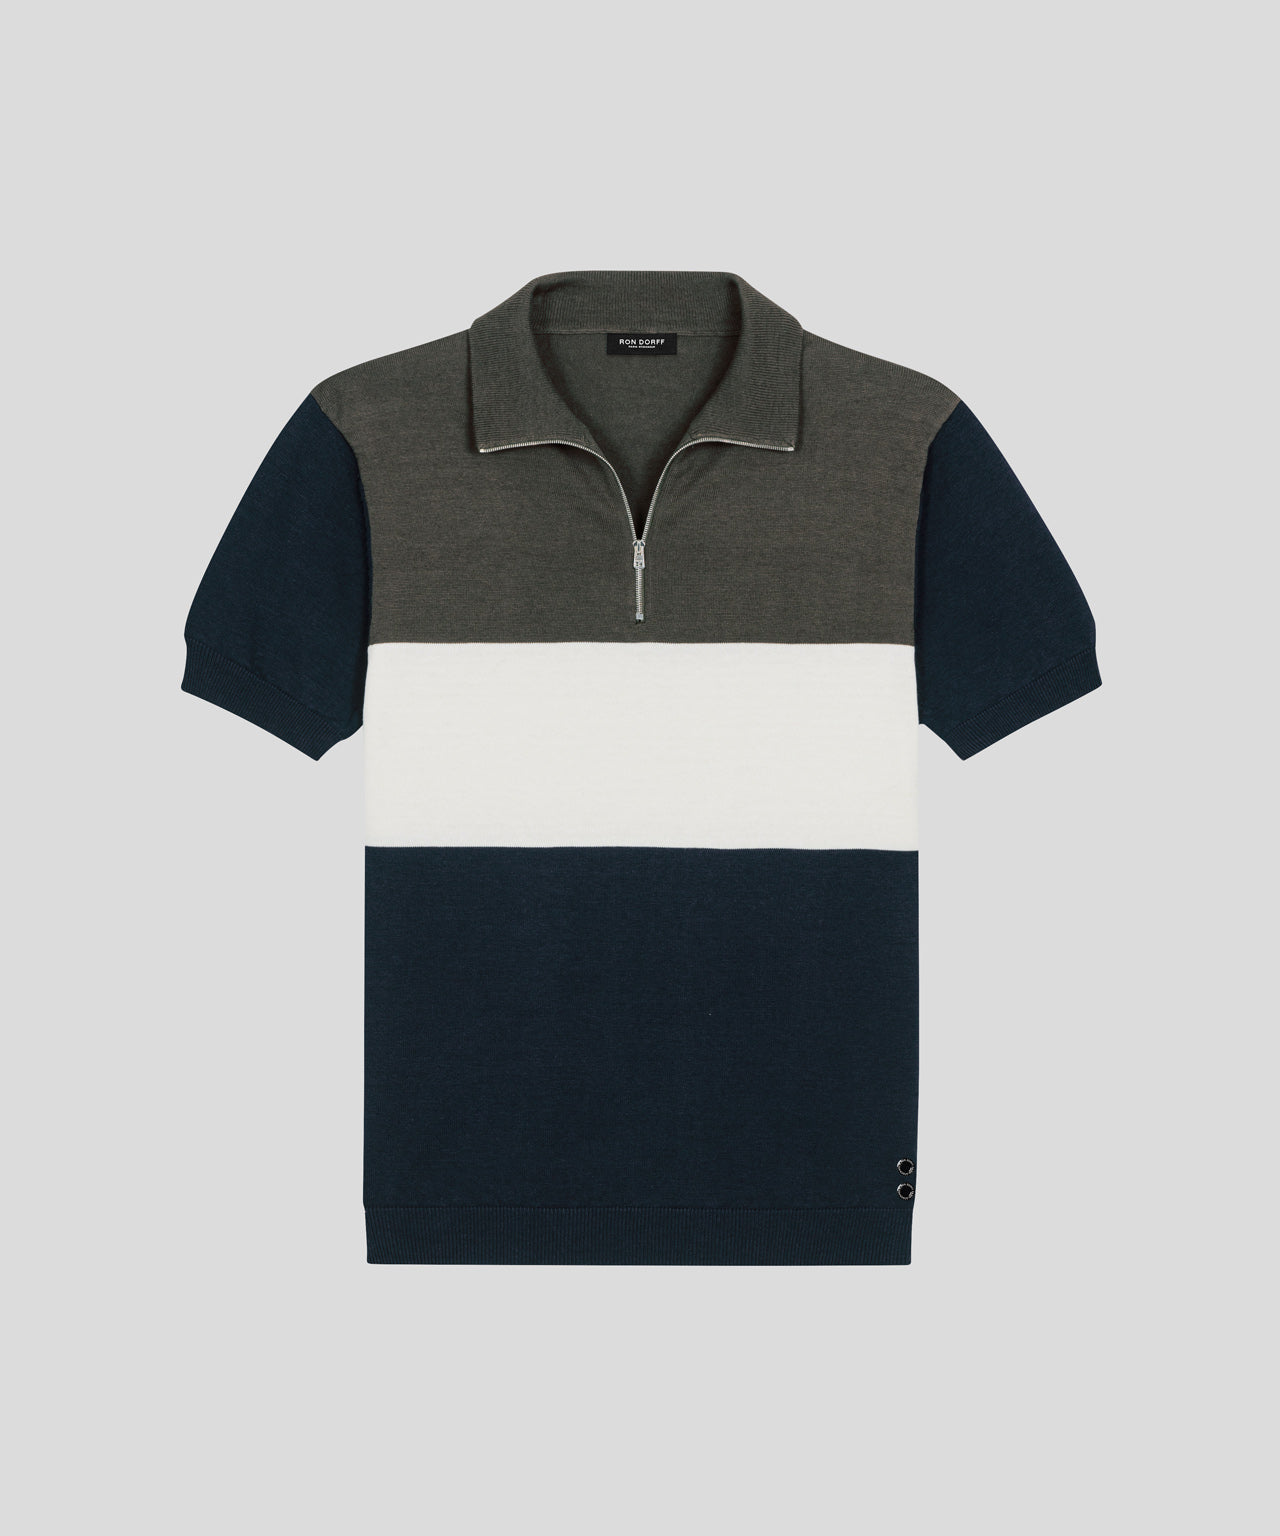 RD Polo - green camp/navy